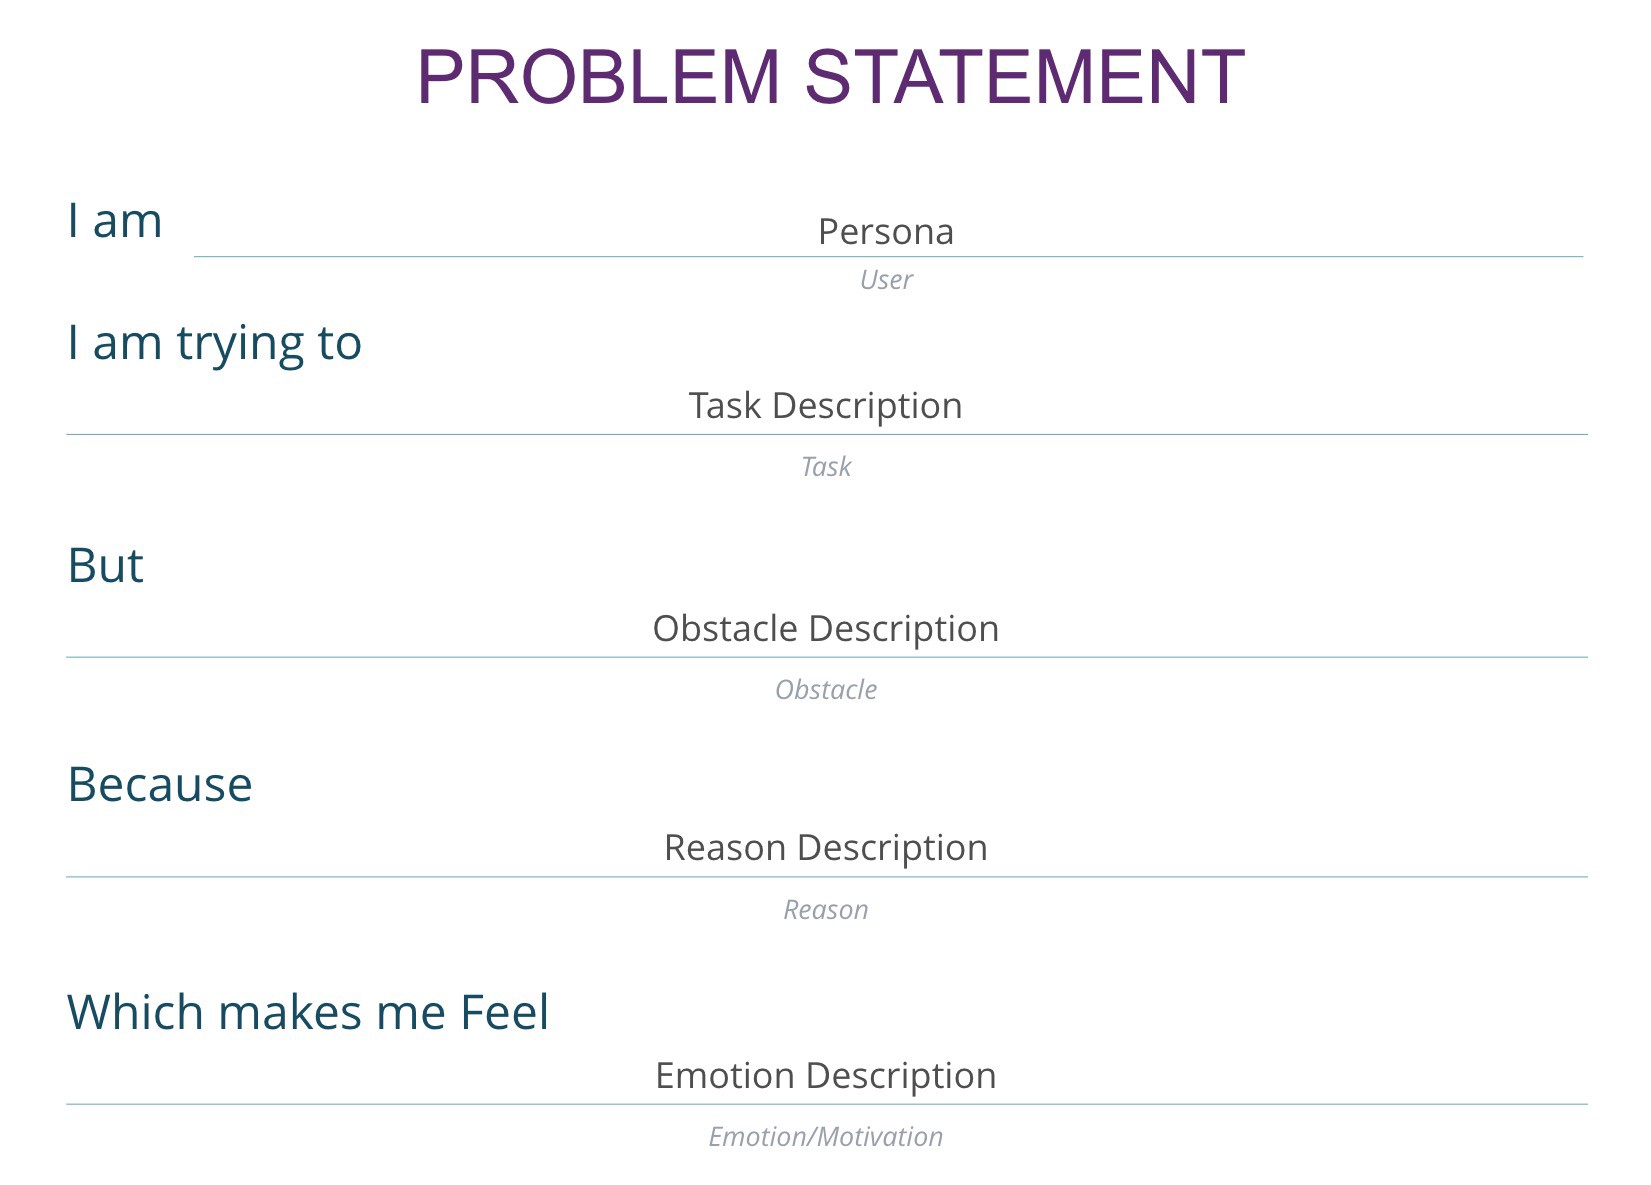 I am (Persona), I am trying to (task description). But (obsticle description), because (reason) which makes me feel (emotion)